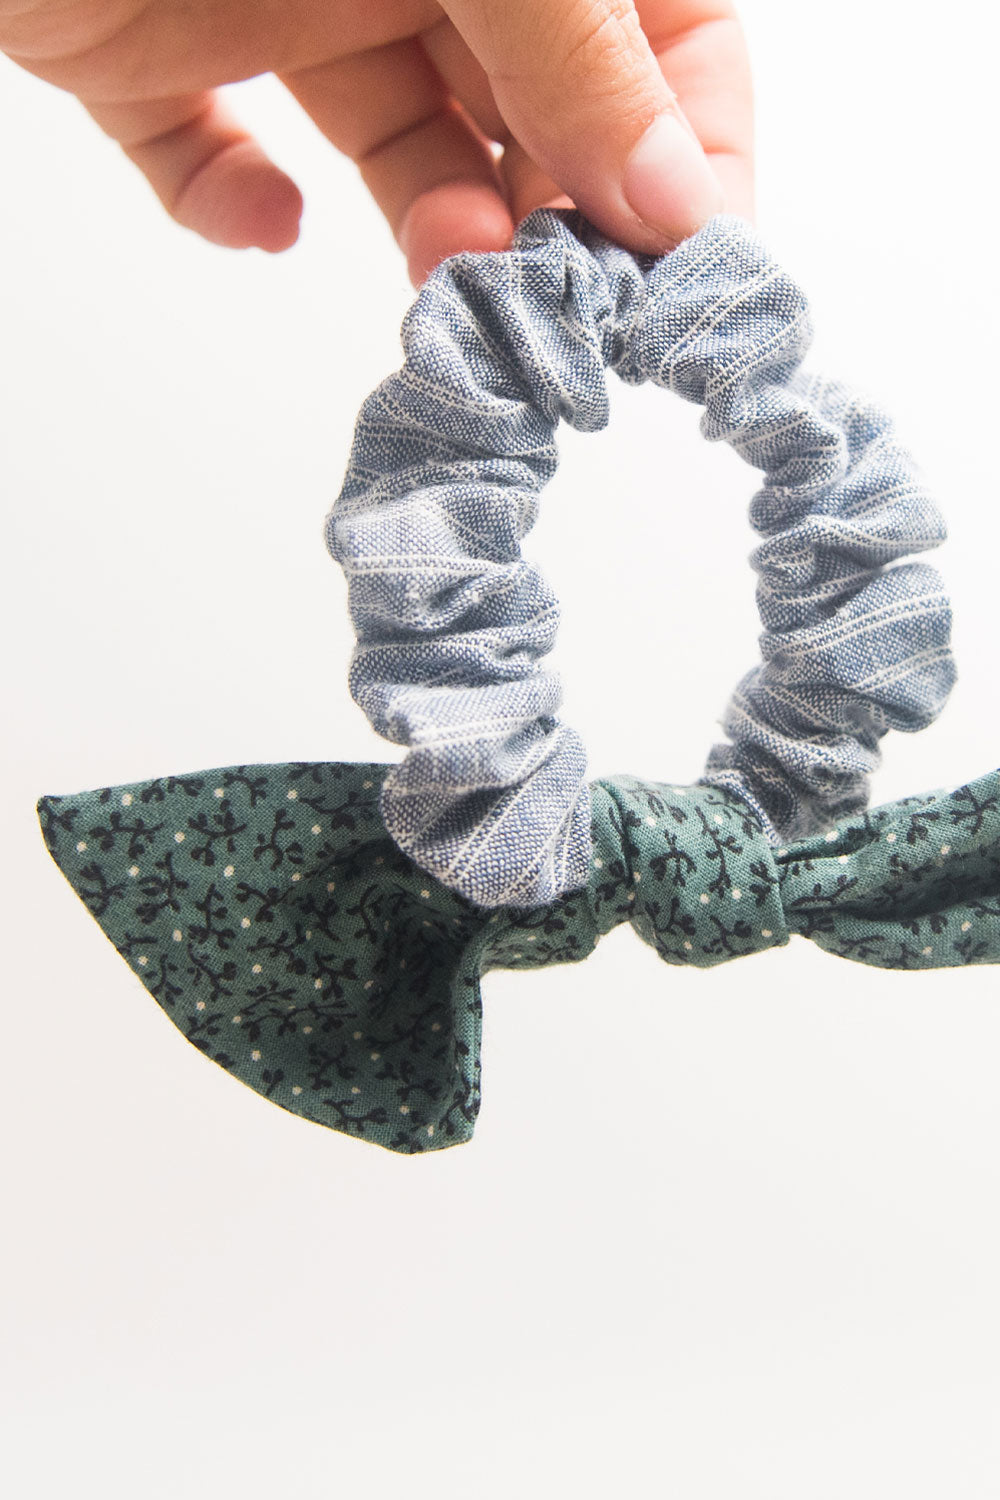 A blue and green bow hair scrunchie is held by two pinched fingers against white background.